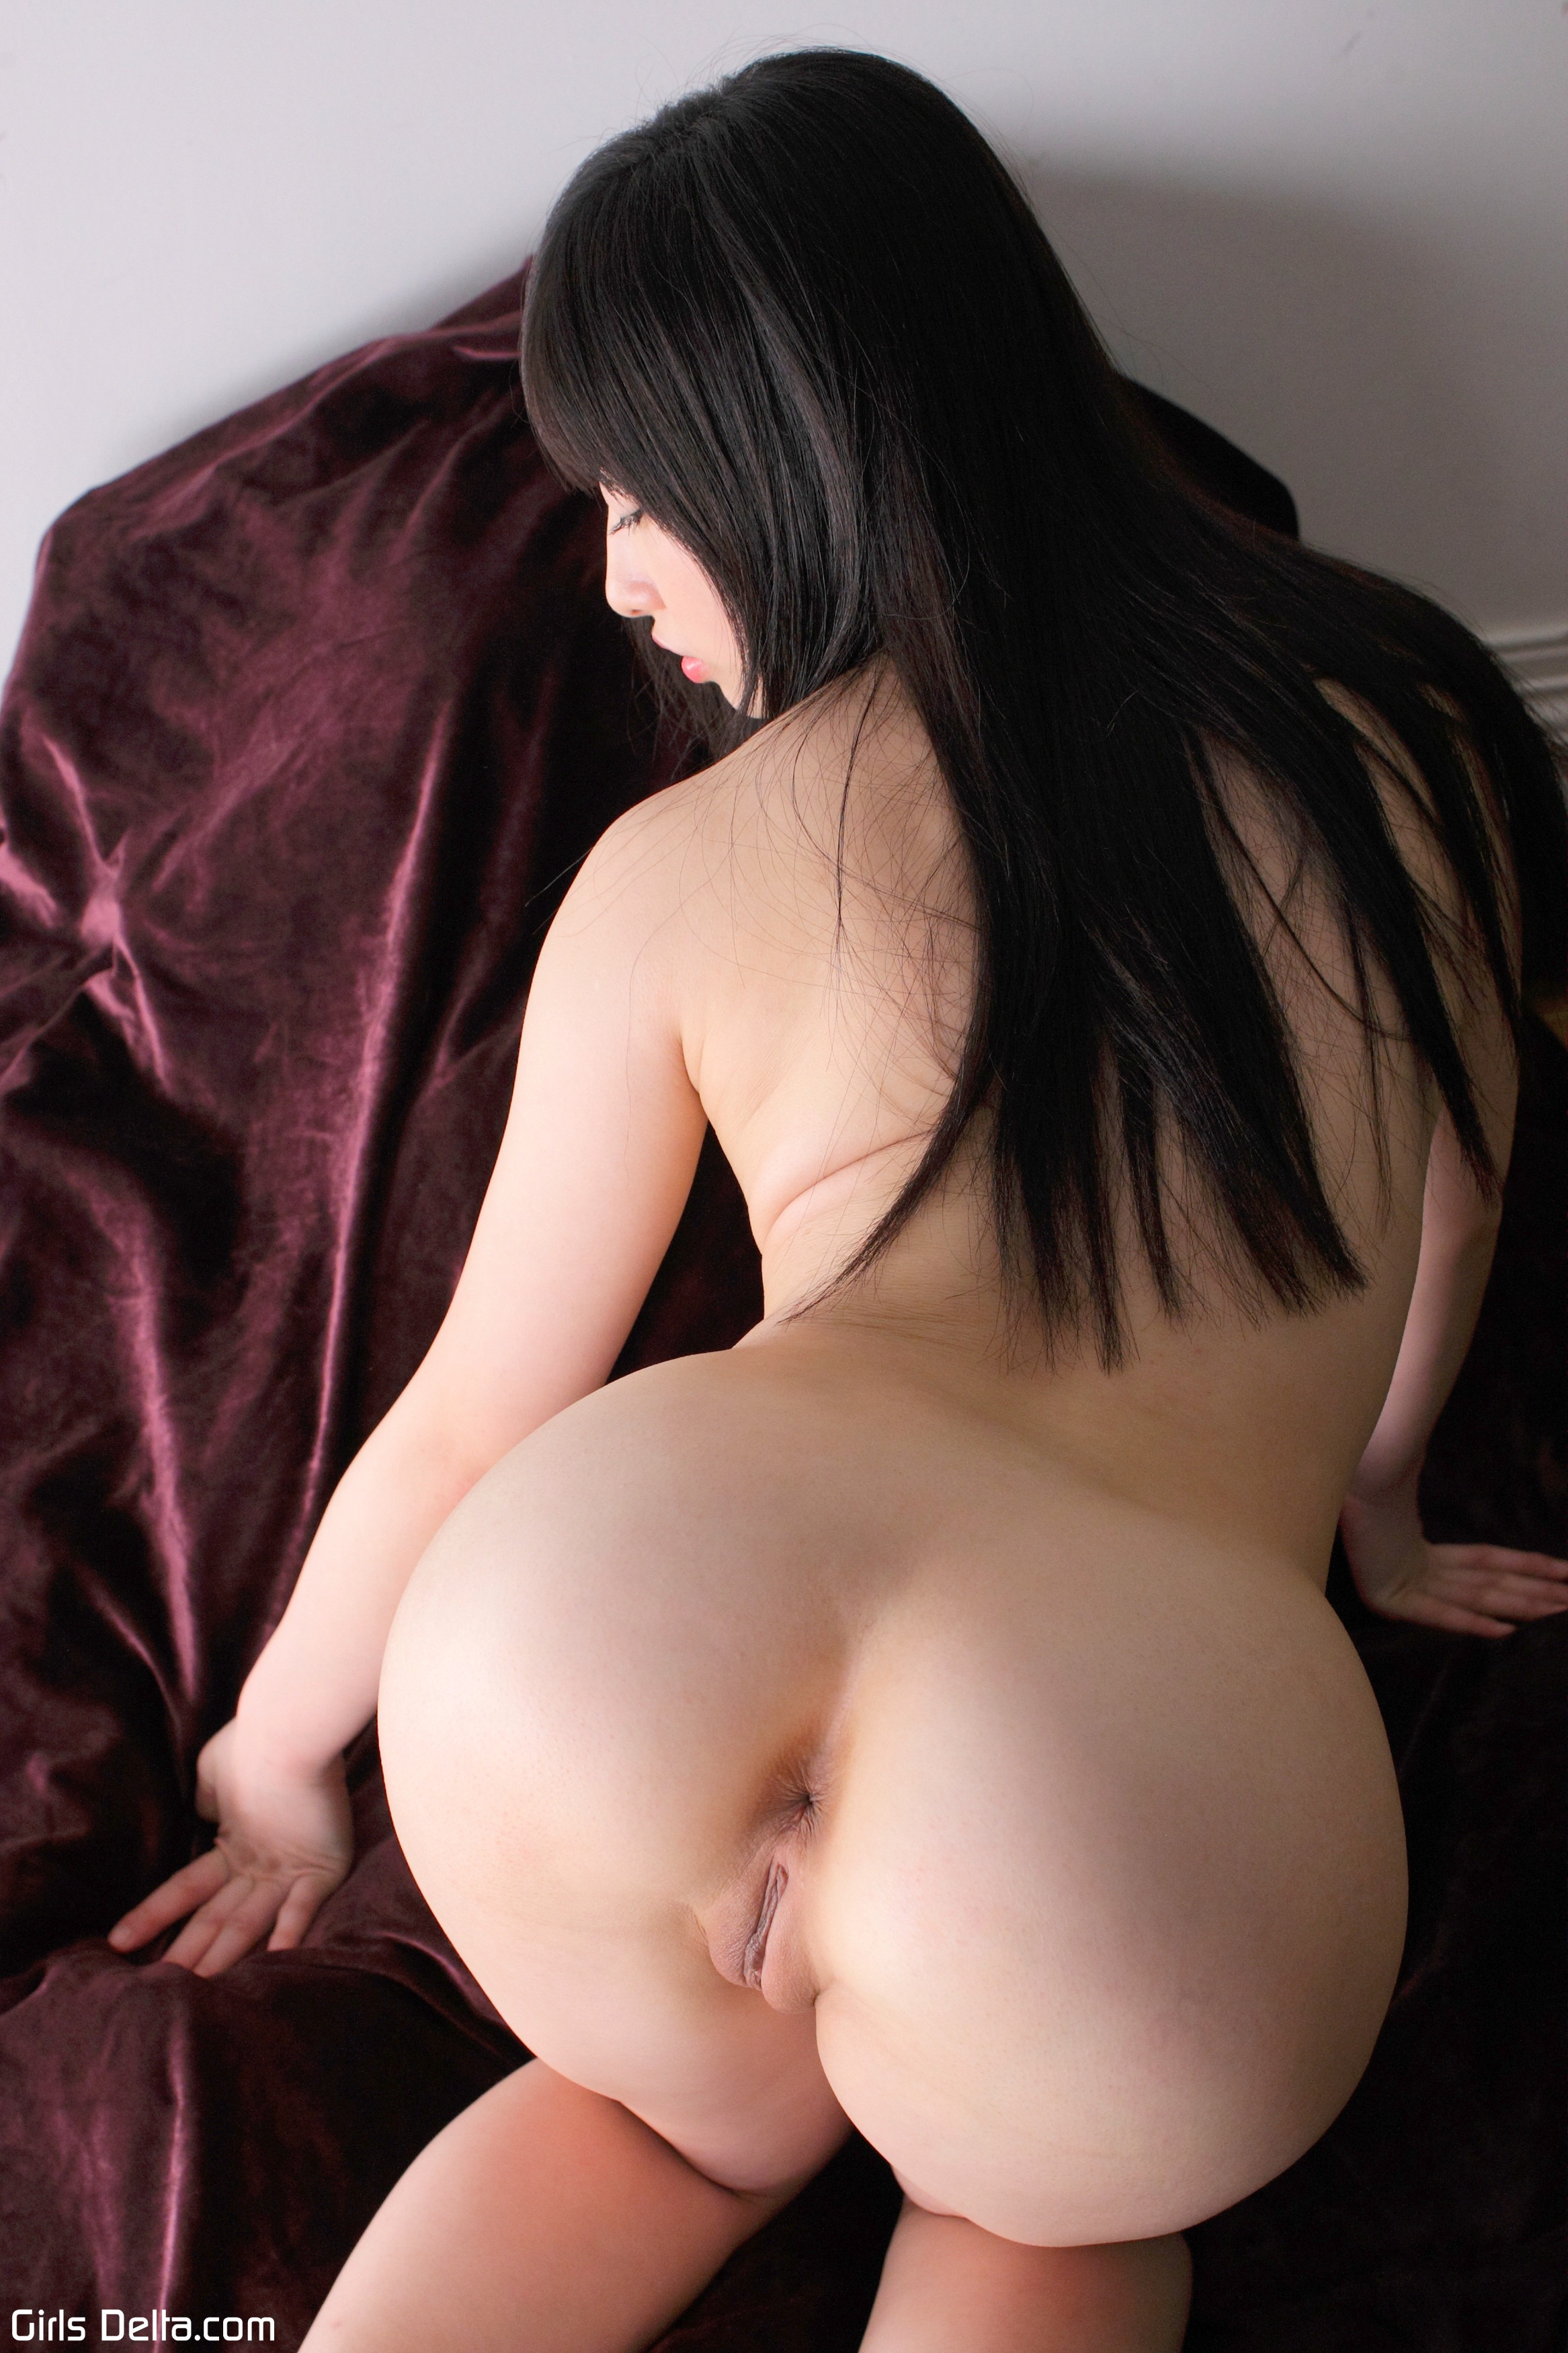 make pussy bleed make pussy bleed The Famous Riku Minato Is Getting Impregnated By Her -In-LawJAVIdol AsianPussy JapaneseGirls Japanesepornidols Incest